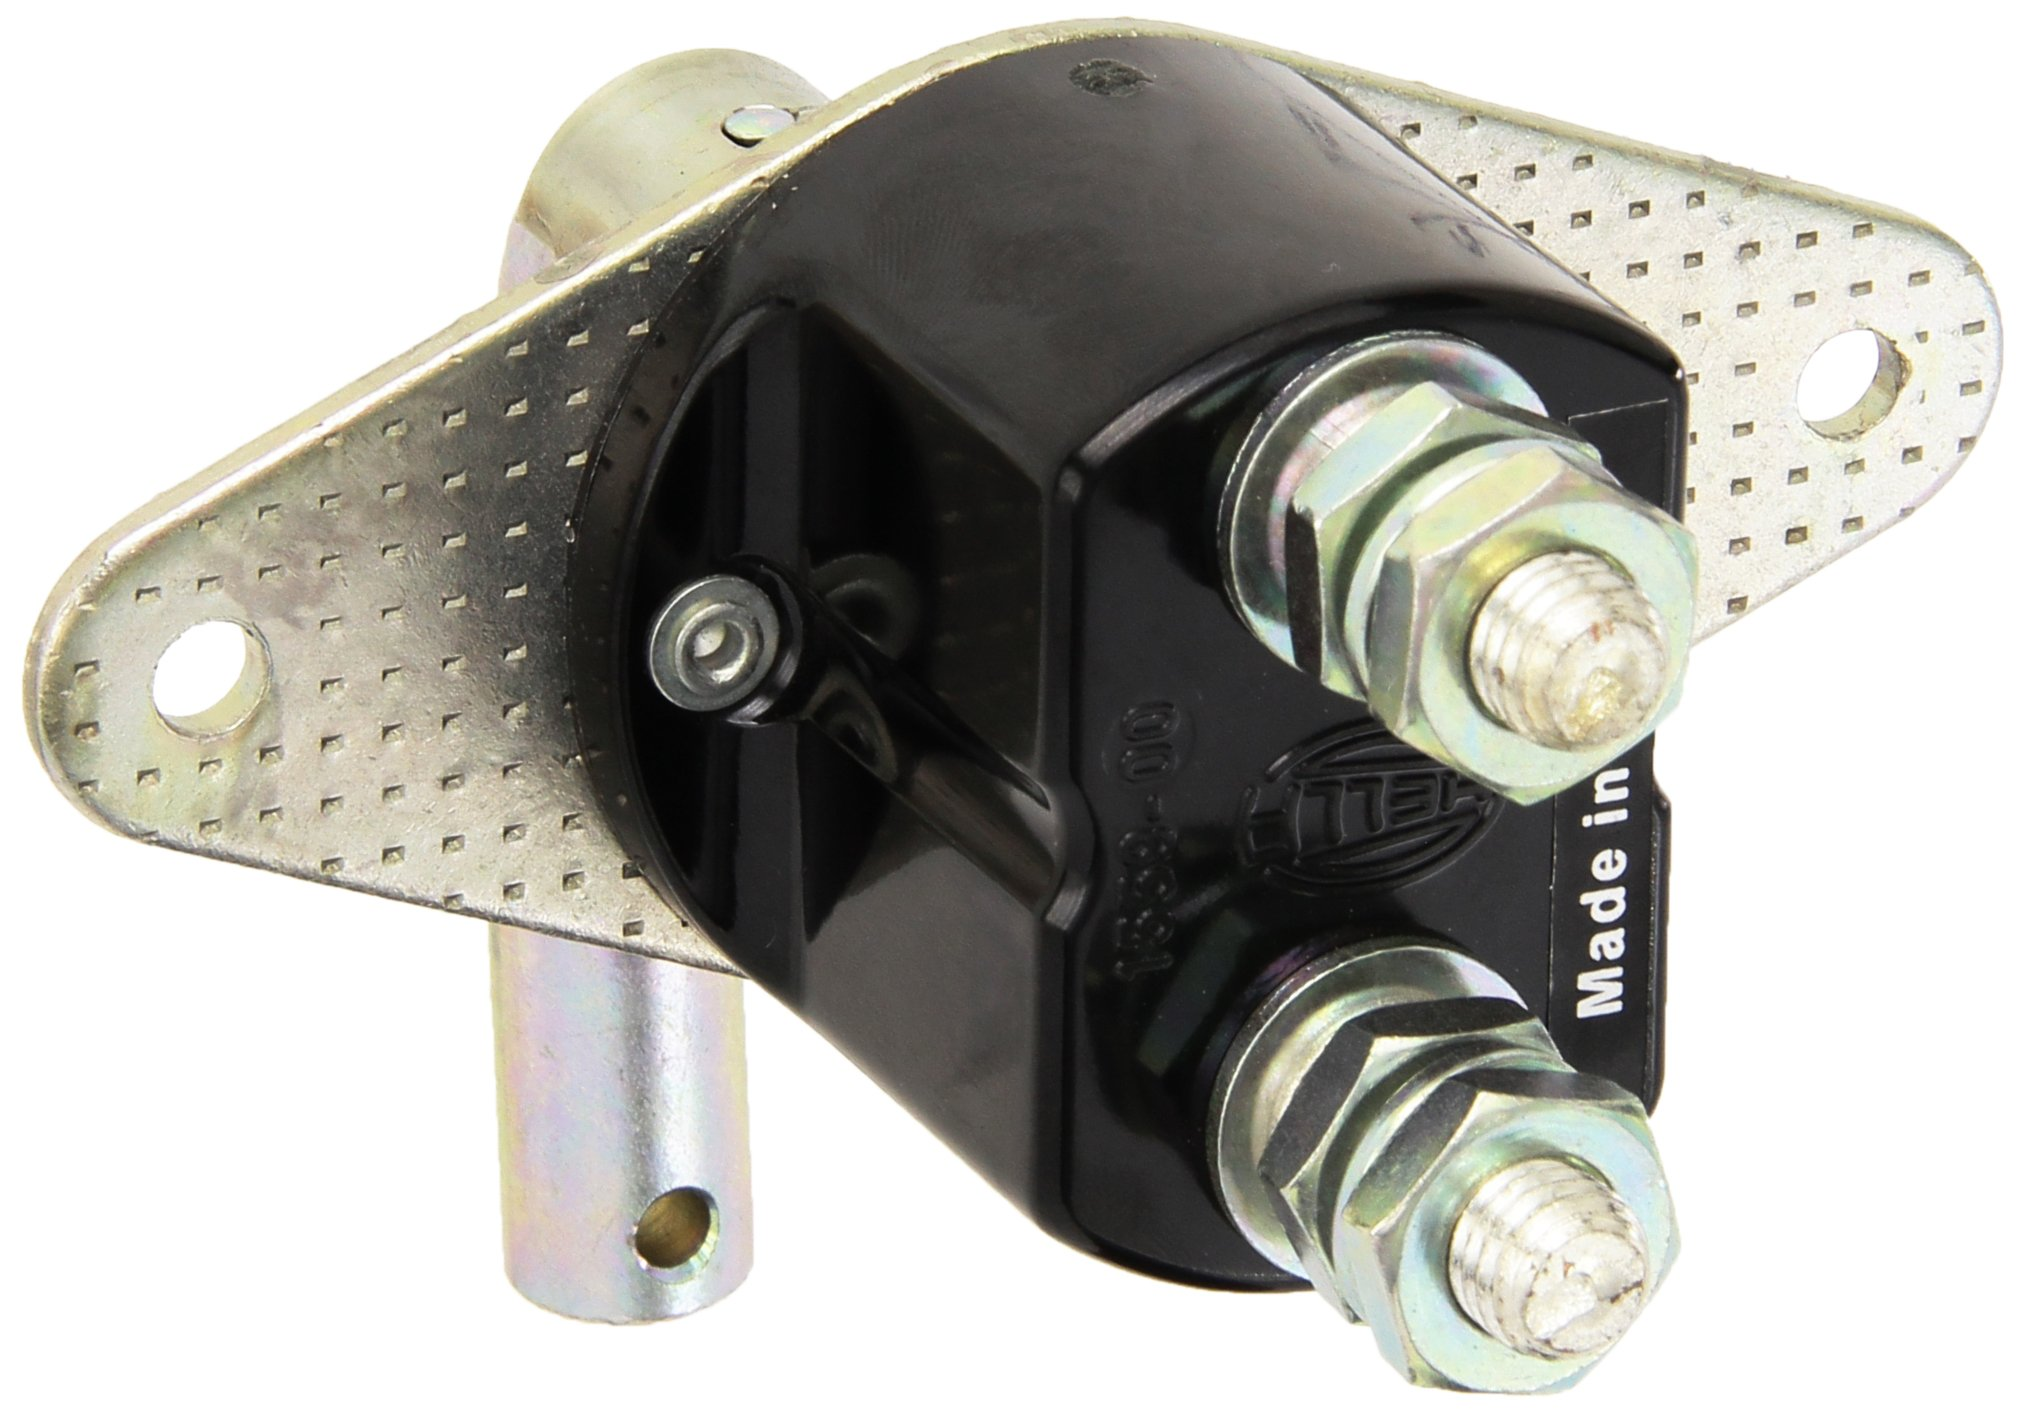 HELLA H62559001 1559 2 Screw Battery Master Switch by HELLA (Image #2)